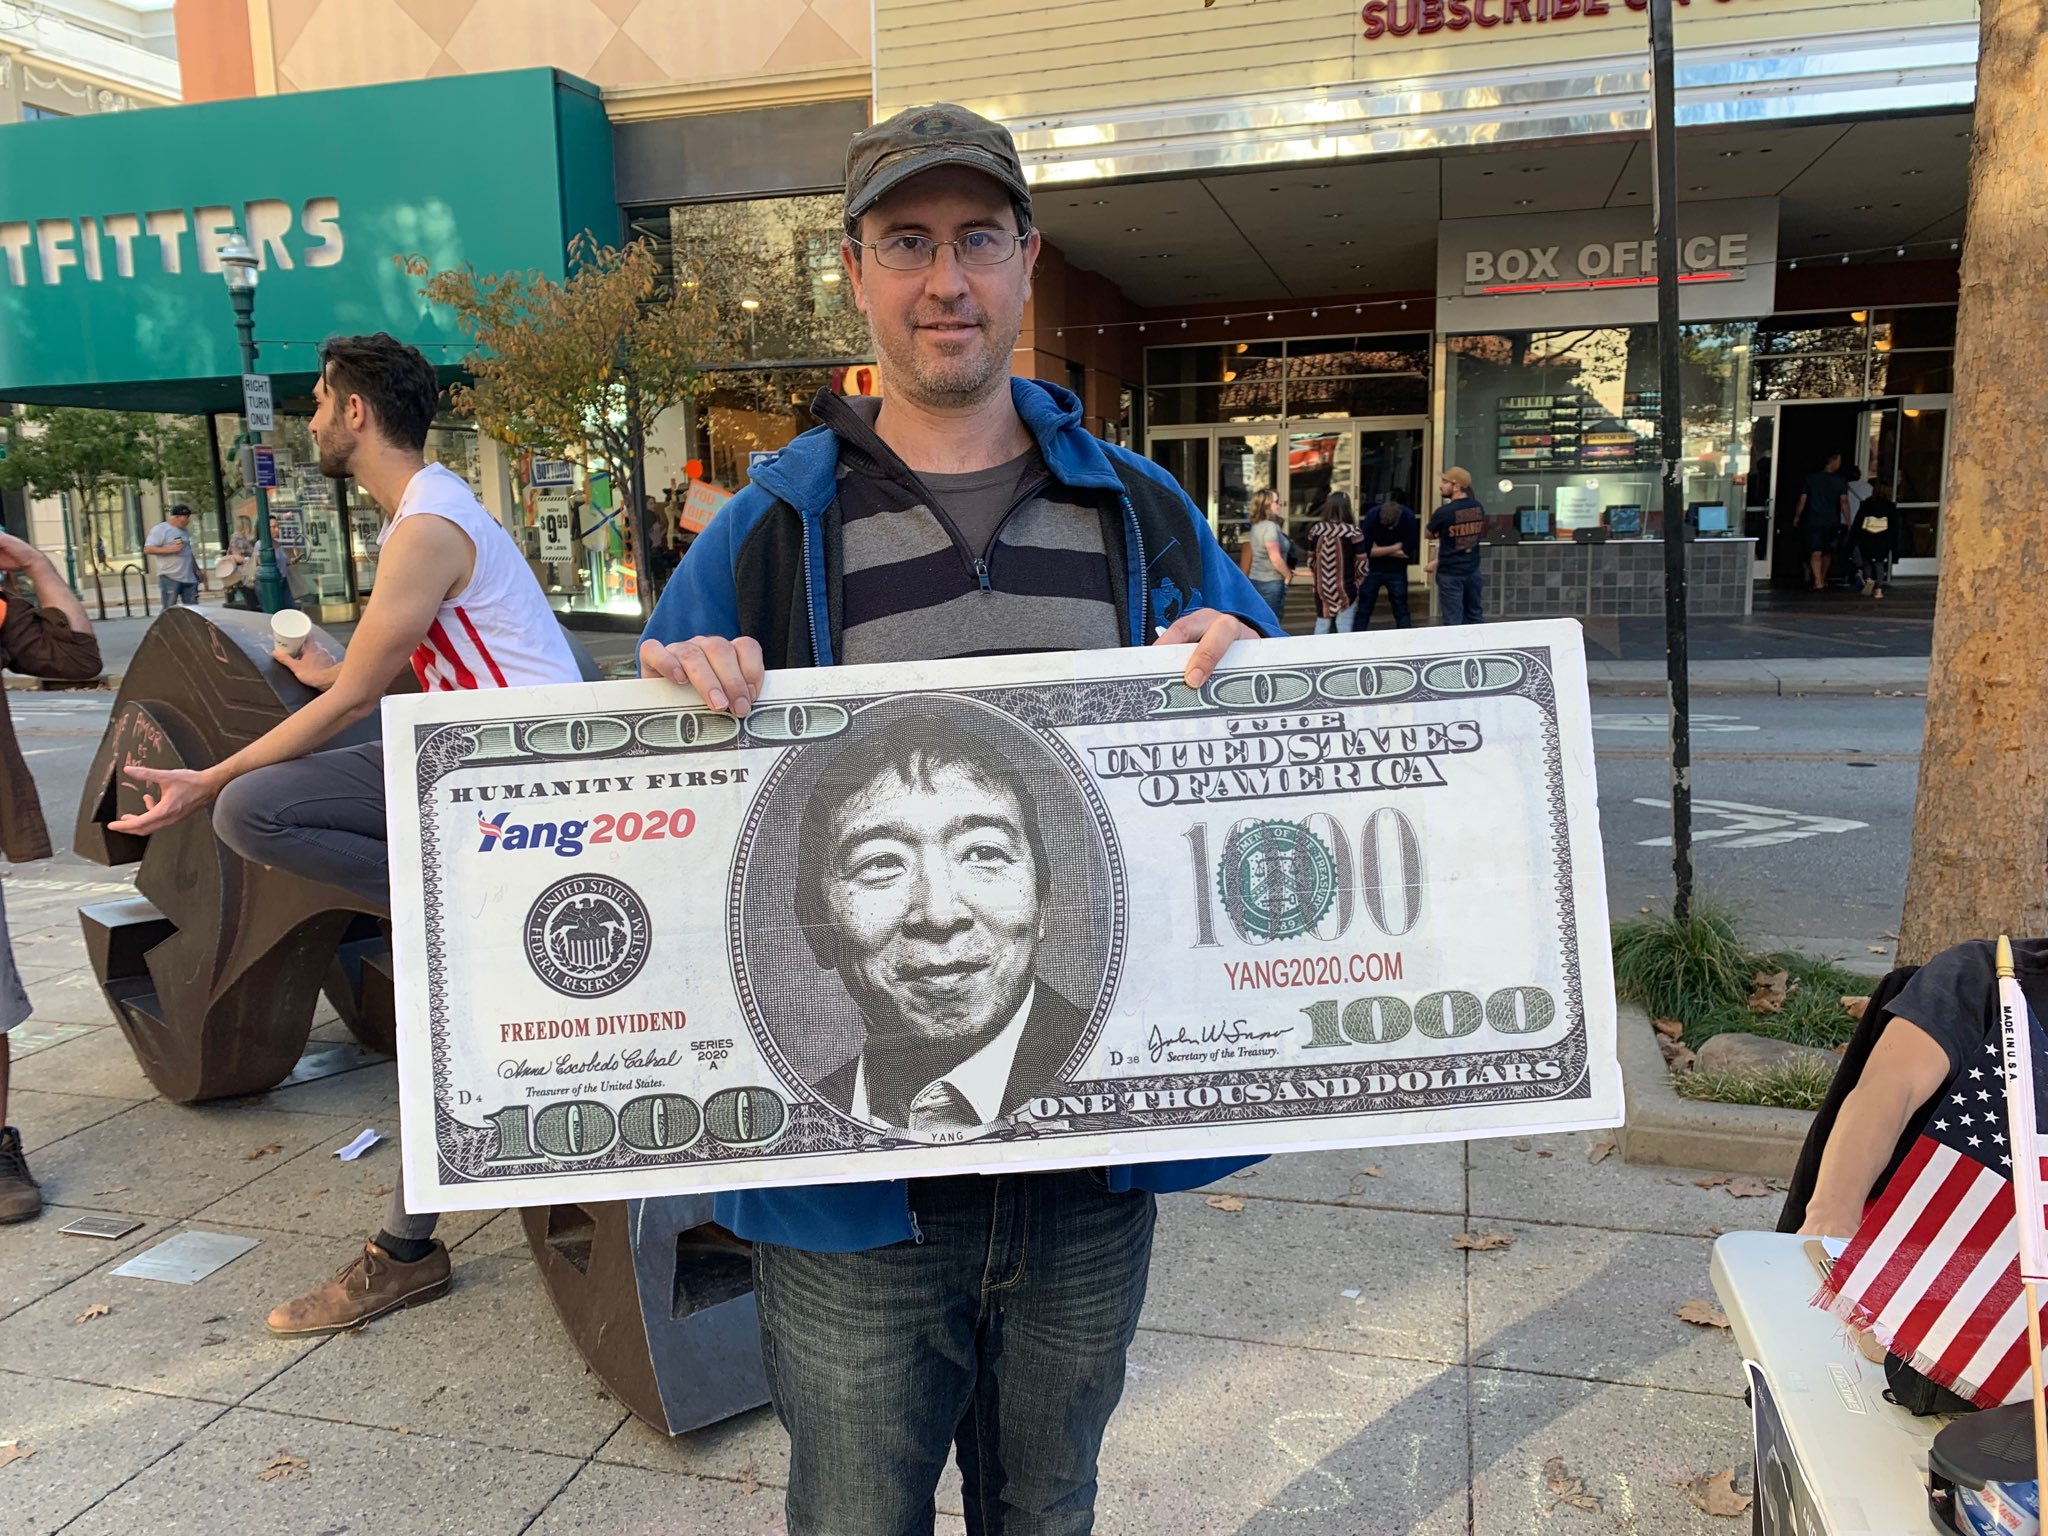 #YangGang is serious in #SantaCruz  on Sunday. #AndrewYang is good for tech and that may be why he's popular here and in #SiliconValley https://t.co/RPnJ6a4Dbm